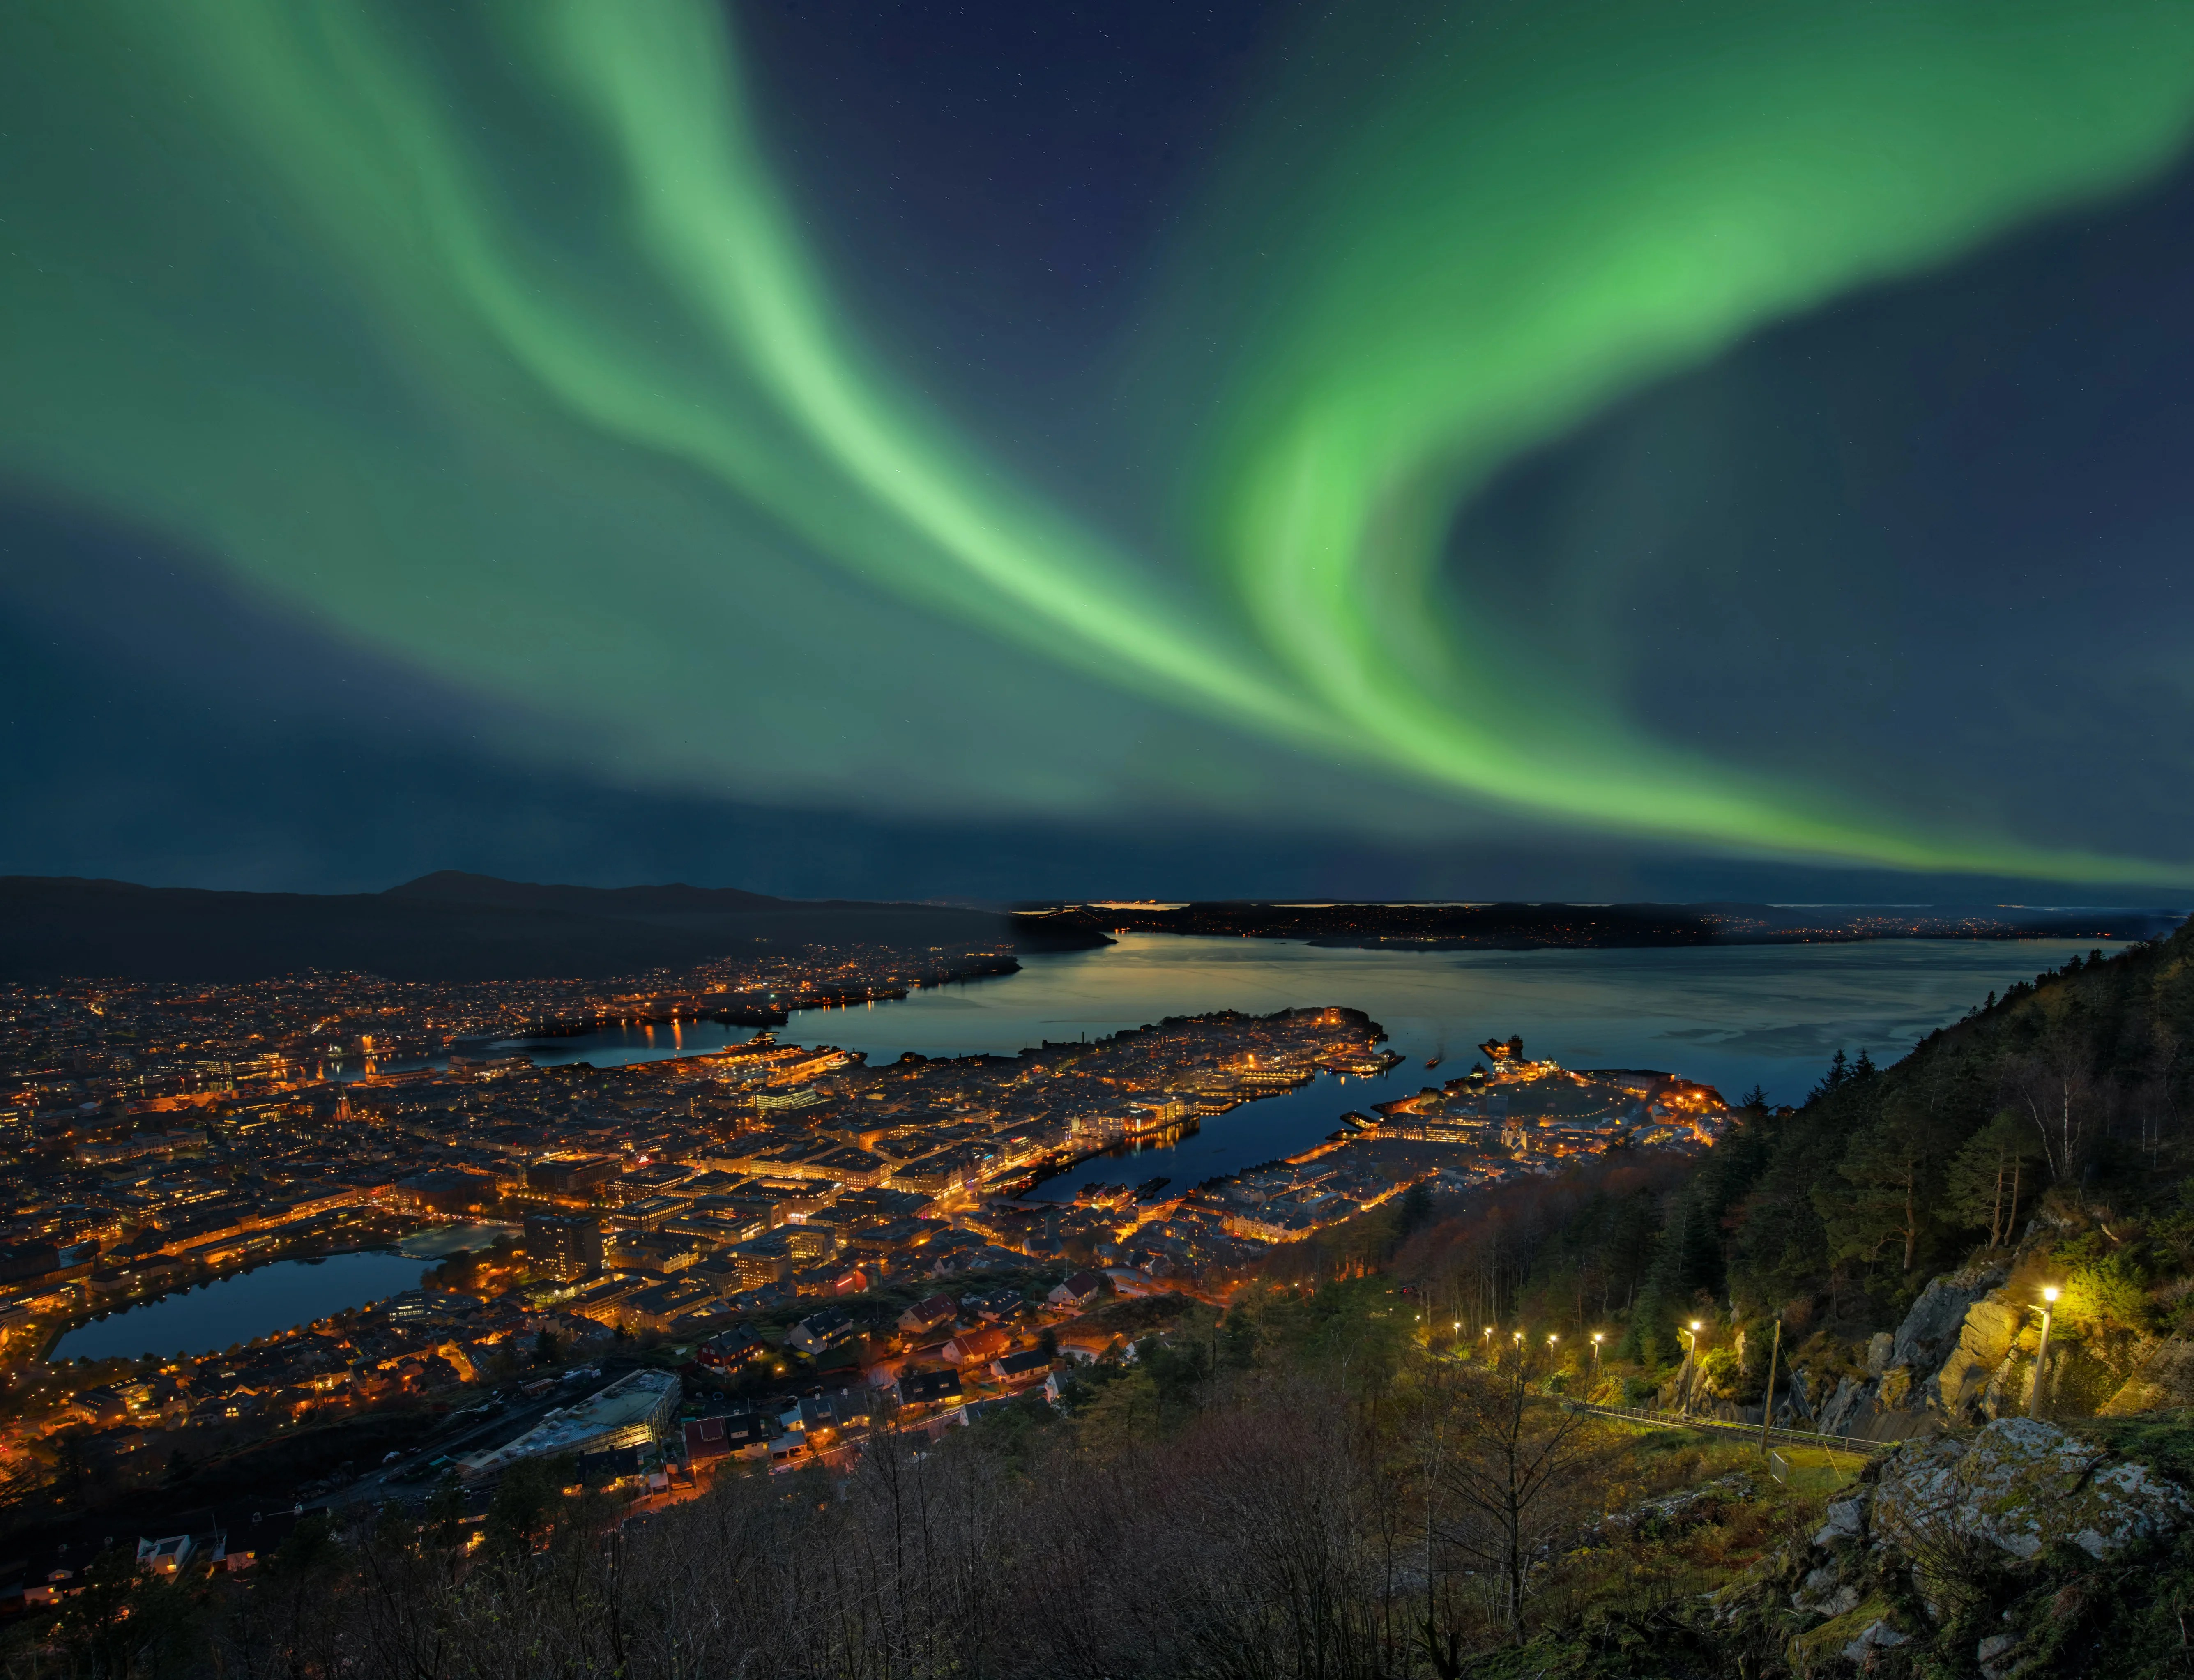 Northern Lights Viewing Season Is Back: Here Are The Best Places To See Them